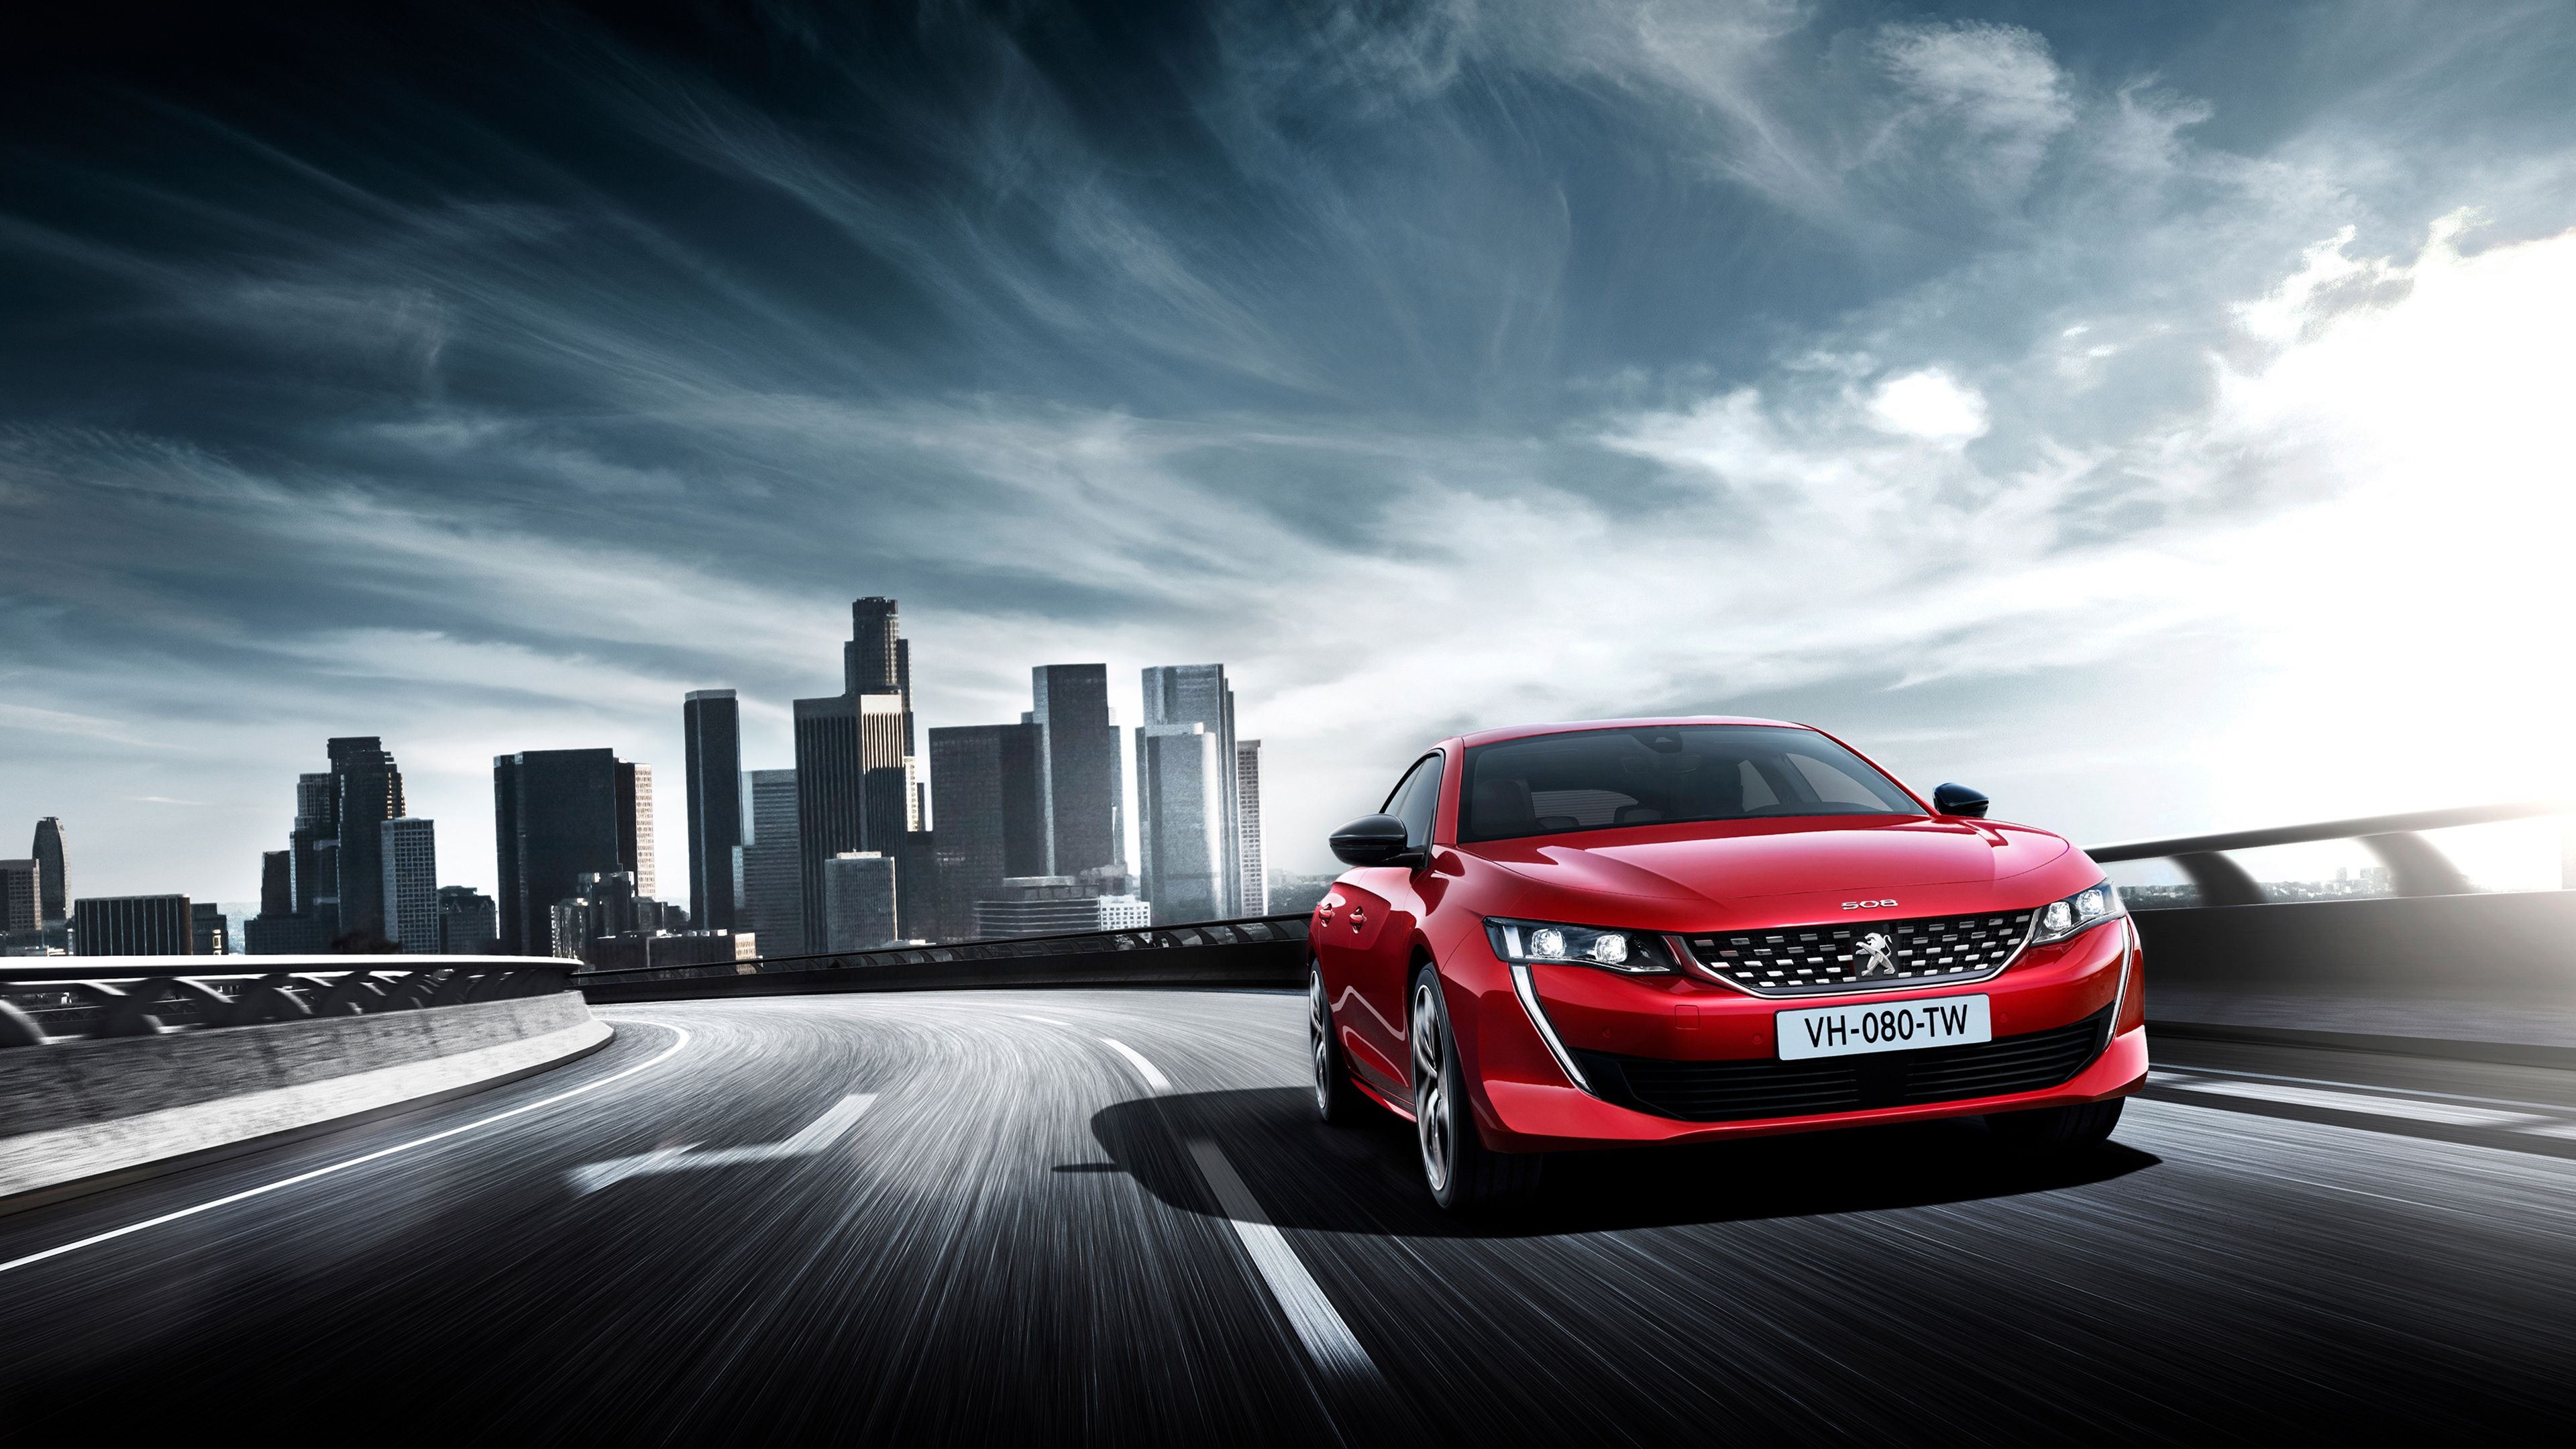 Peugeot 508 Wallpapers Top Free Peugeot 508 Backgrounds Wallpaperaccess